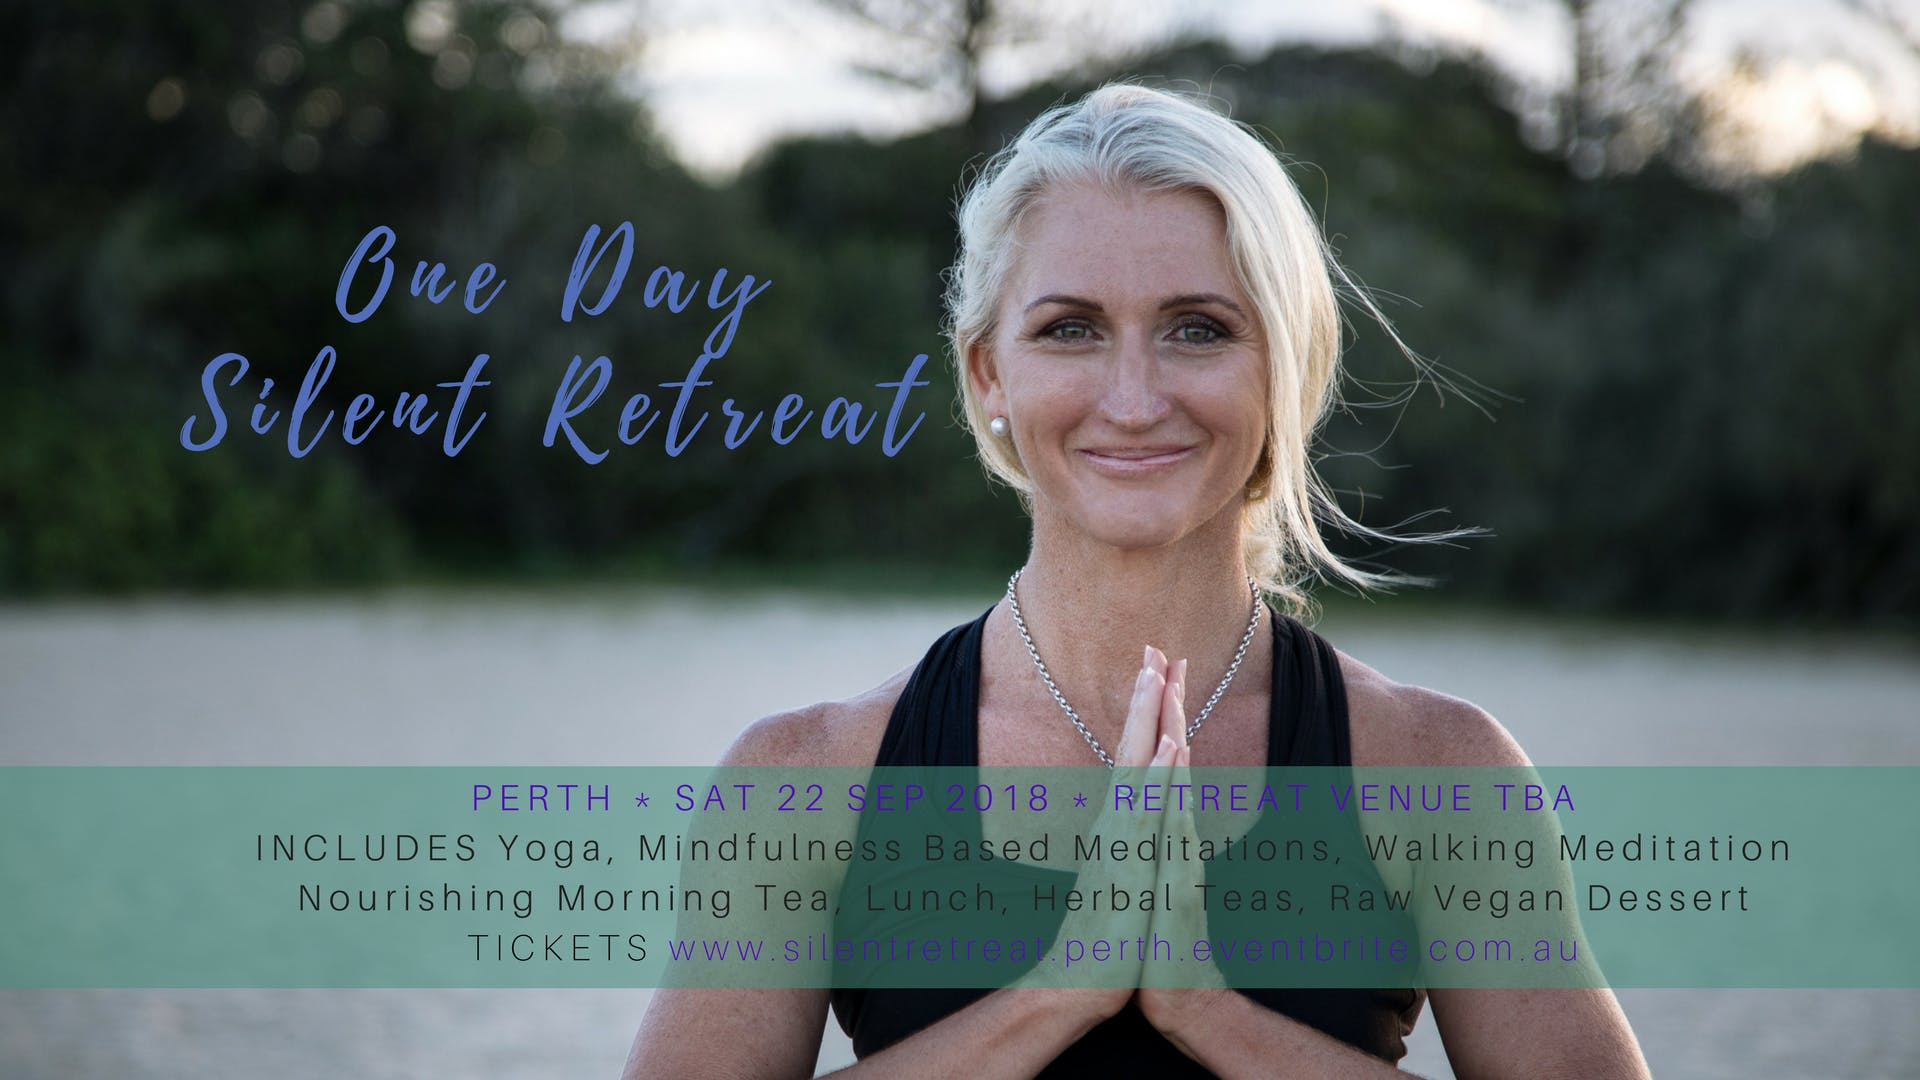 One Day Silent Retreat Self Enquiry &amp Nourishment PERTH 22 Sep 2018 with Tammy Williams Yoga NRG